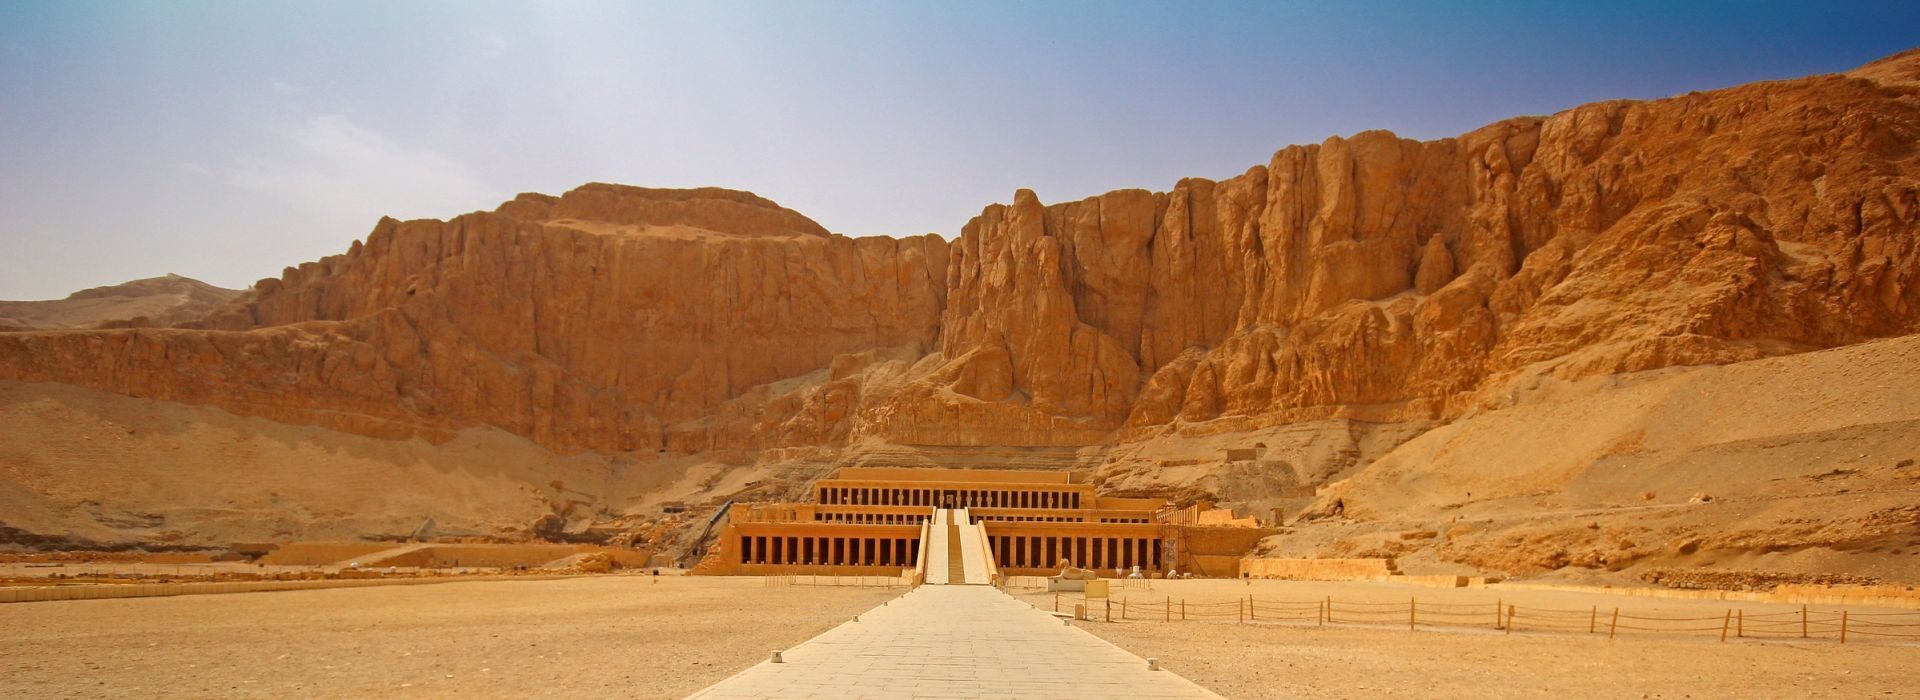 Cultural, religious and historic sites Tours in Alexandria